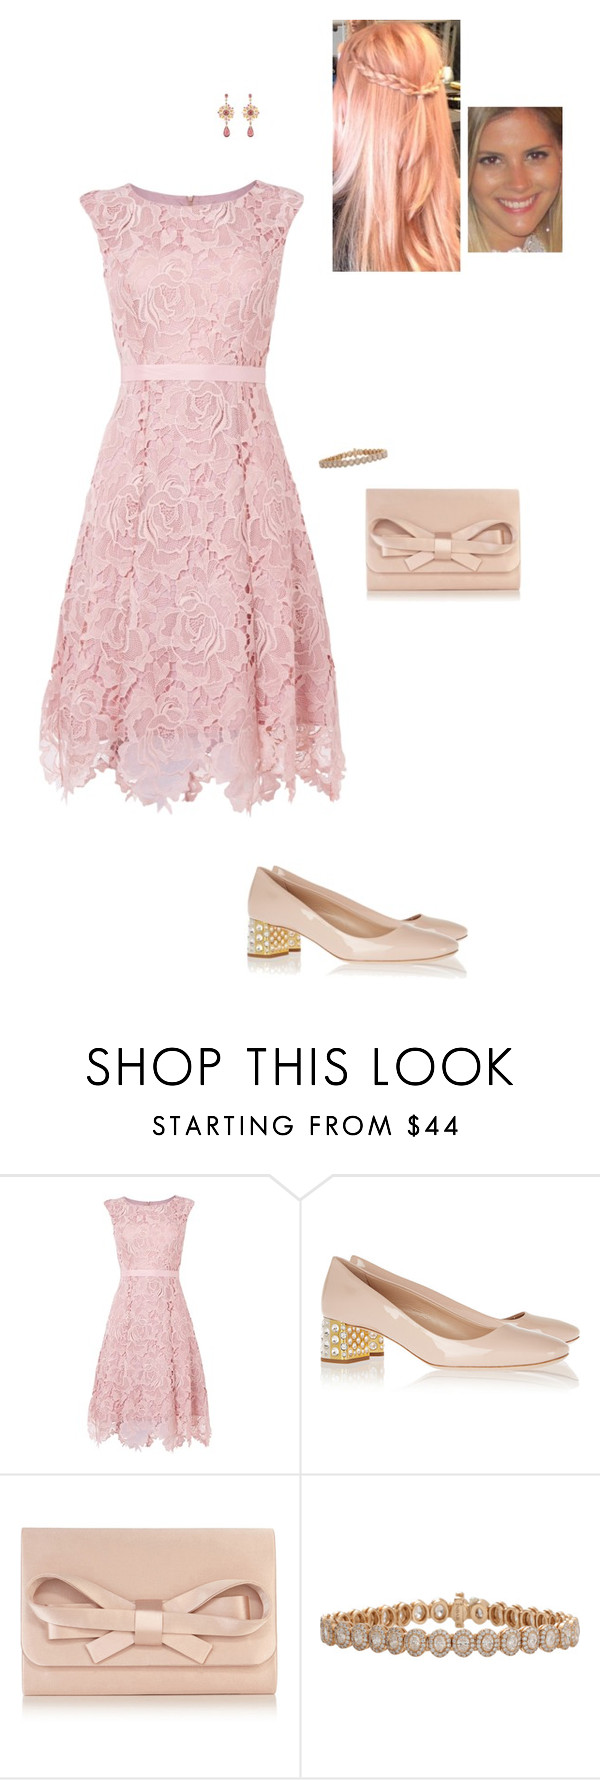 """Sem título #7193"" by gracebeckett on Polyvore featuring moda, Phase Eight, Miu Miu, Coast, Inbar e Chanel"